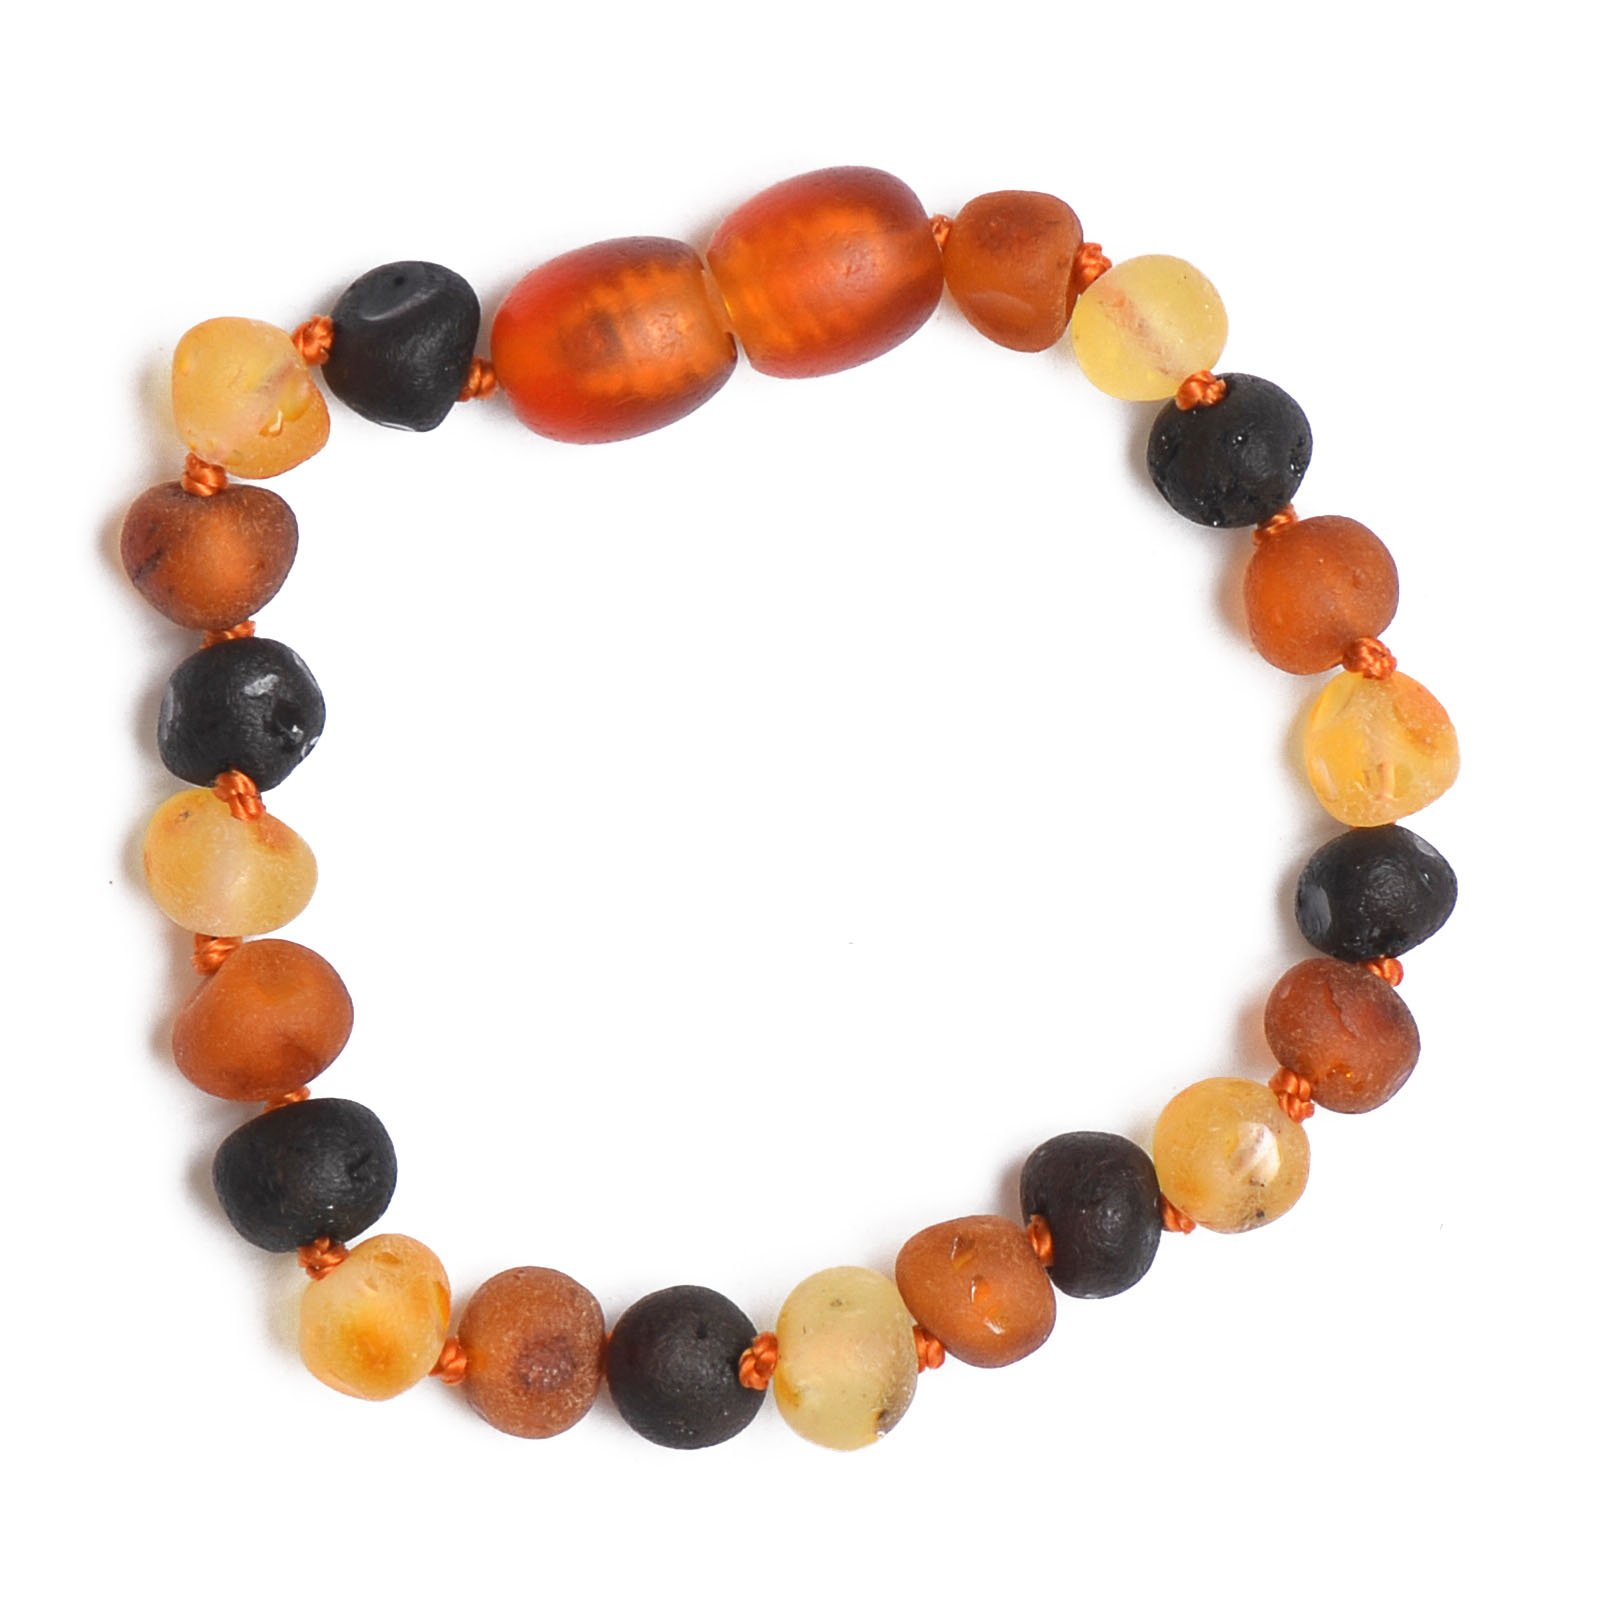 Genuine Amber - Baby Unisex Teething Anklet / Bracelet - 5.5 Inches - Raw Not Polished 100% Natural Baltic Amber Beads - Knotted Between Beads - With Plastic Screw Clasp - Mixed